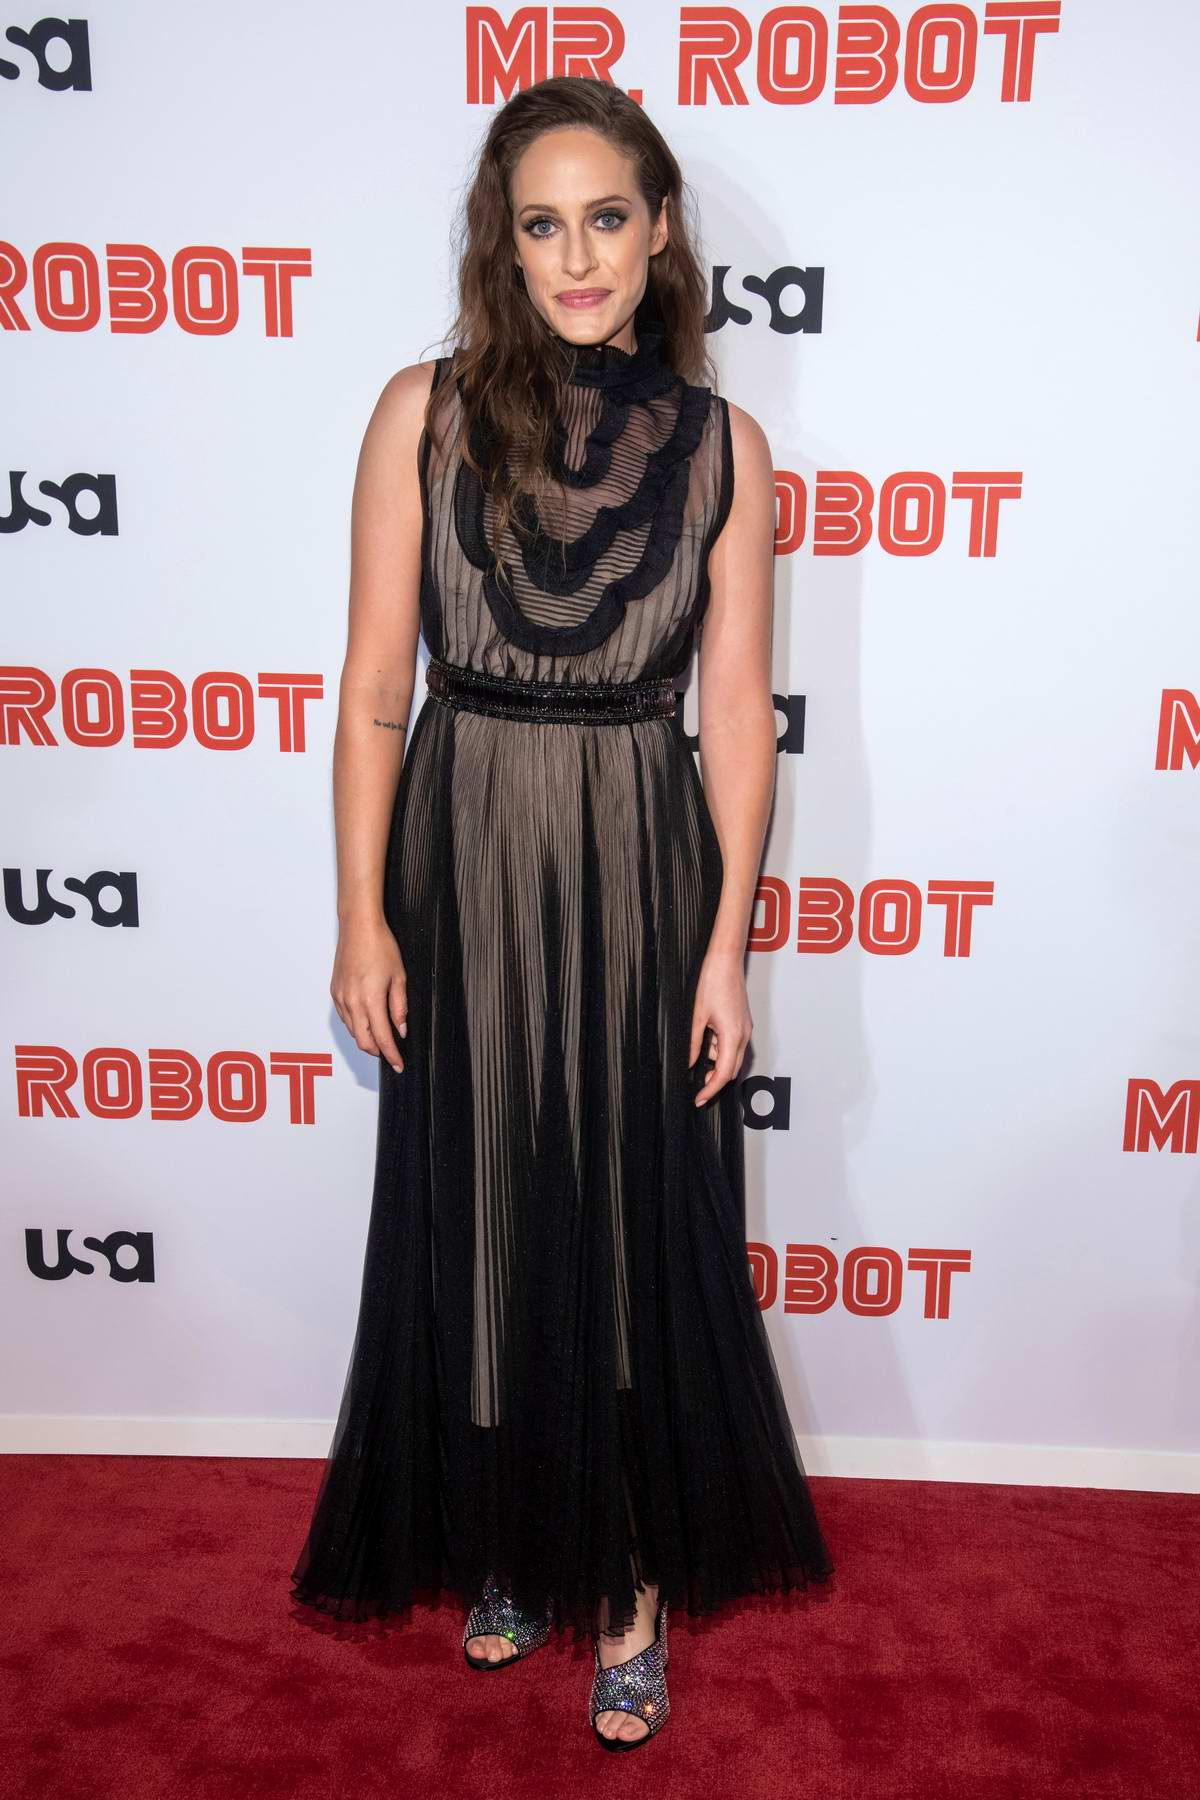 Carly Chaikin attends 'Mr Robot' Season 4 premiere at Village East Cinema in New York City